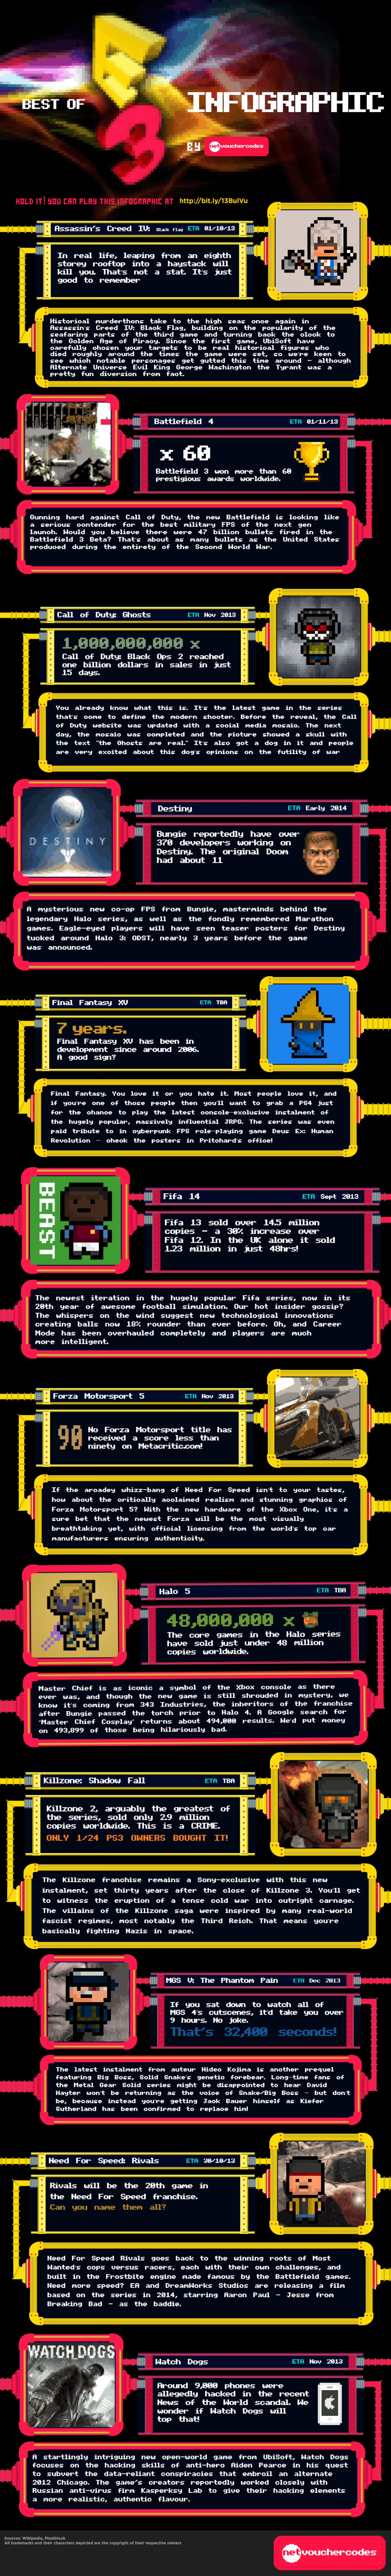 Best of E3 Infographic